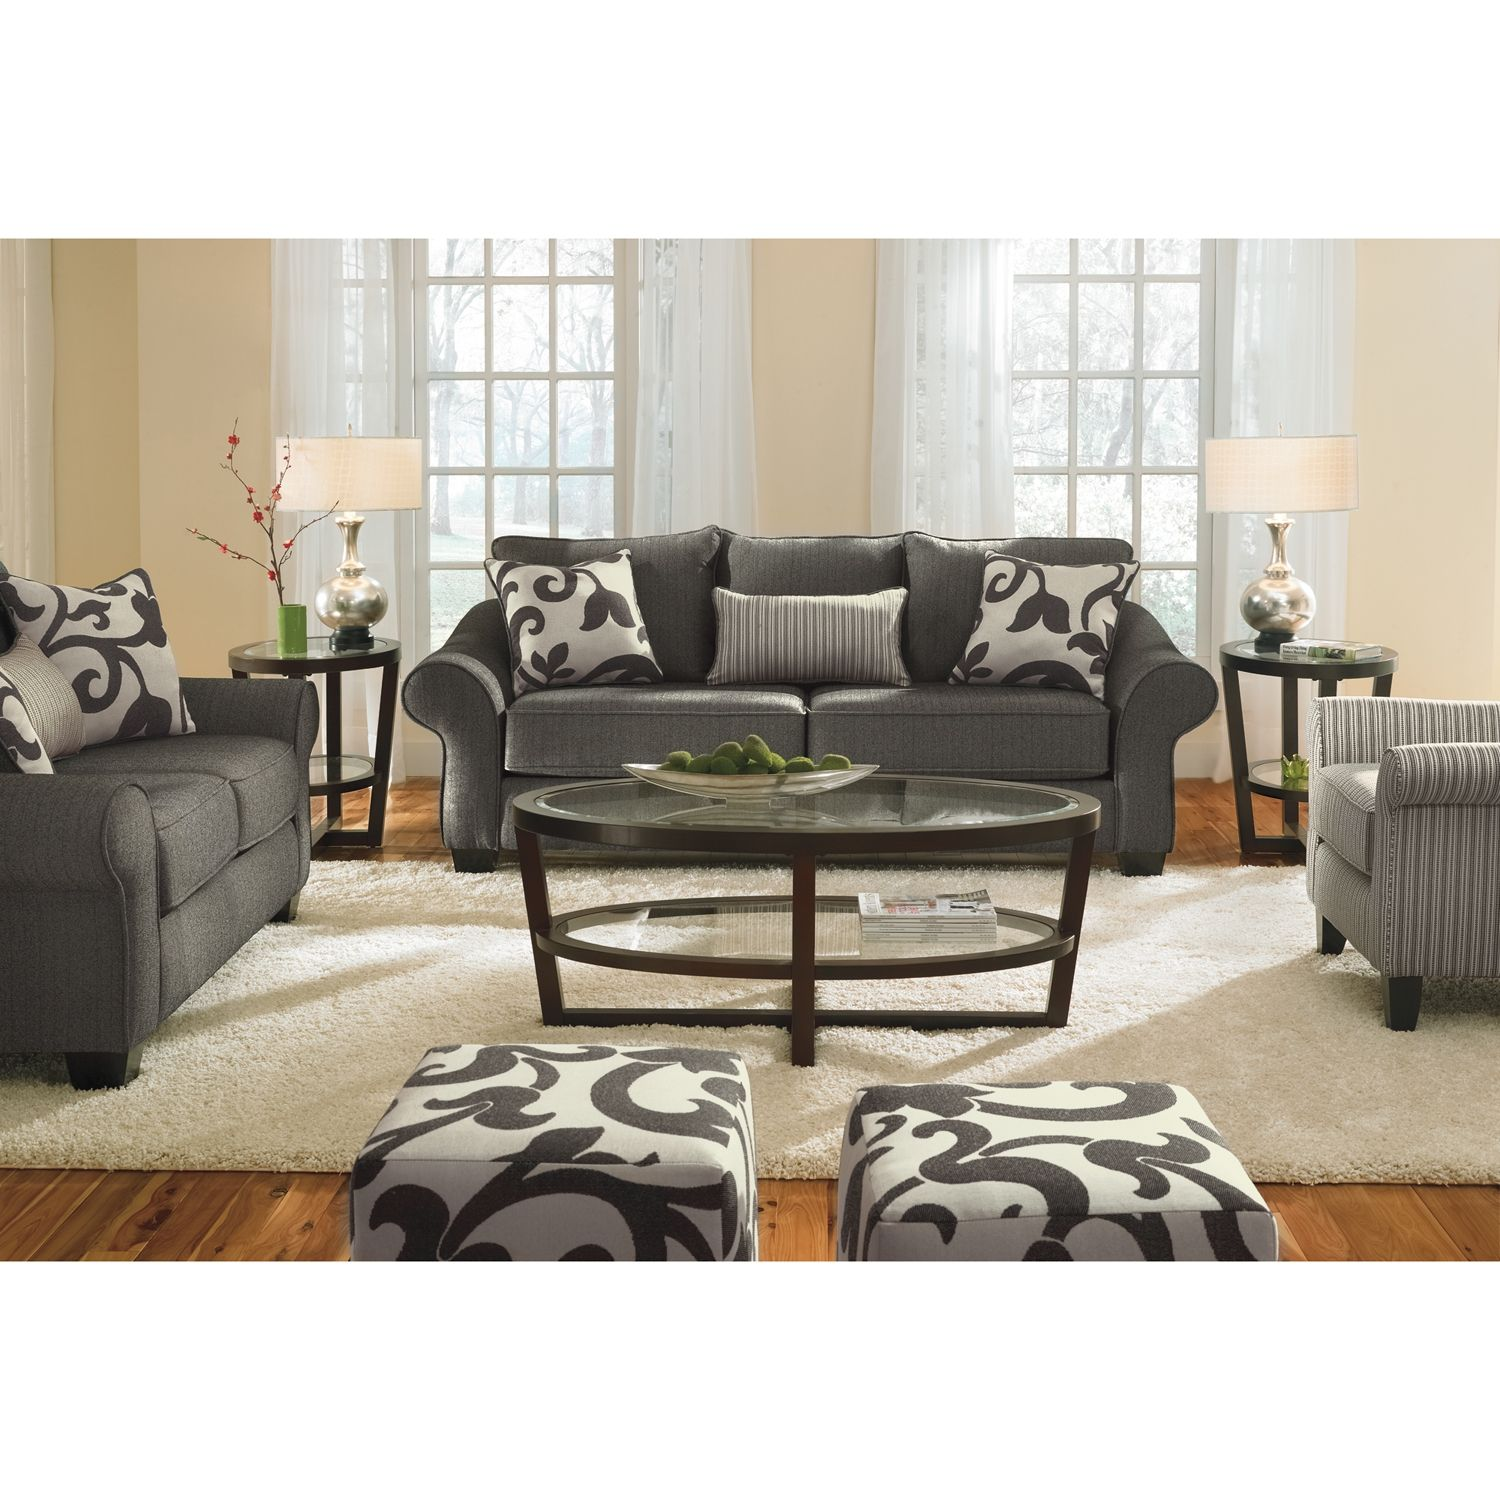 Living Room Chair Cushions 500 Colette Upholstery 3 Seat Gray Herringbone Sofa With Accent